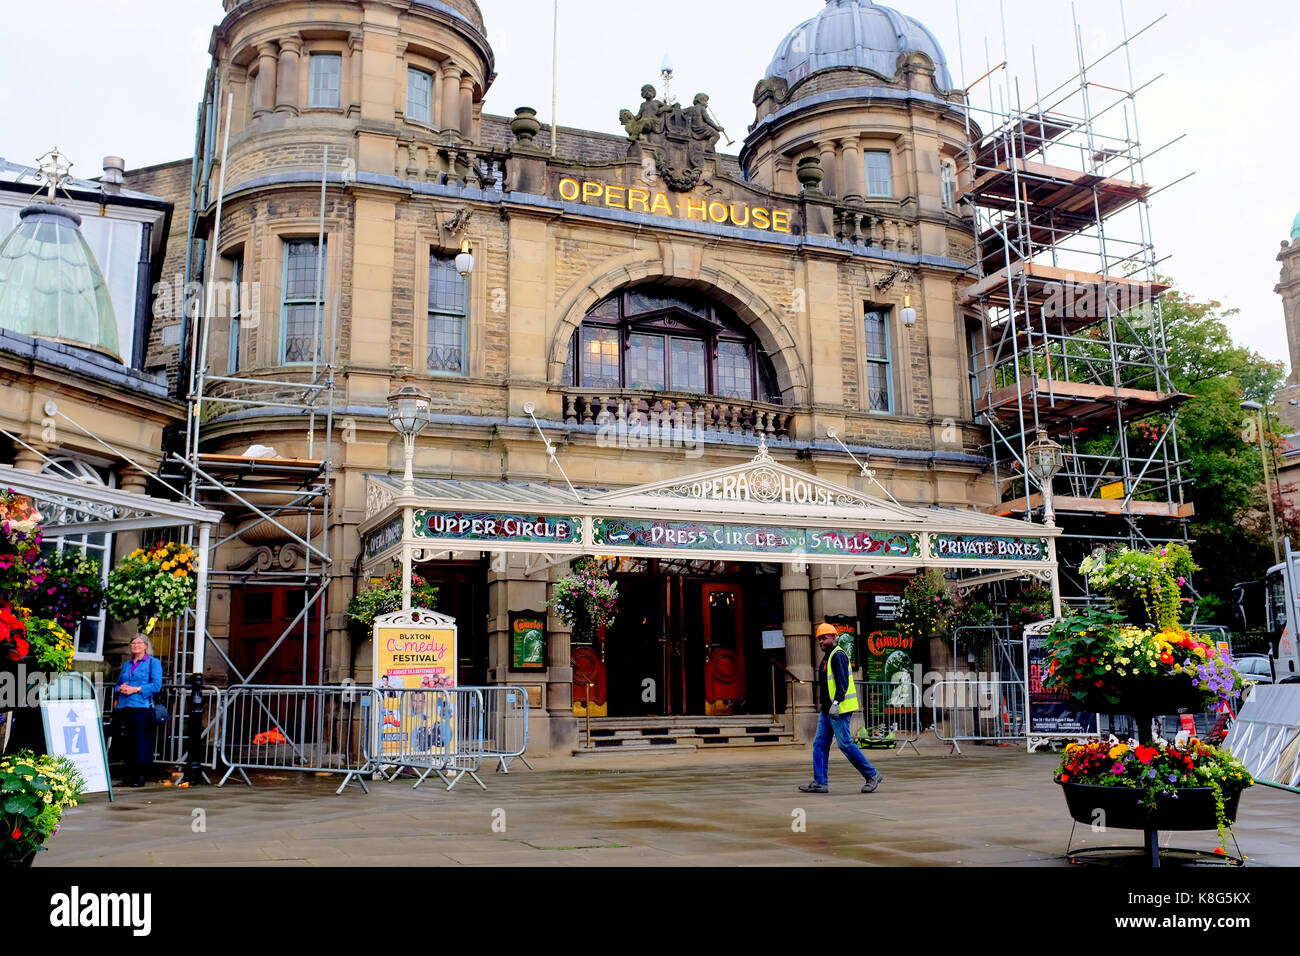 Buxton, Derbyshire, UK. August 23, 2017. The Opera house was designed by Frank Matcham in 1909 and is the highest - Stock Image